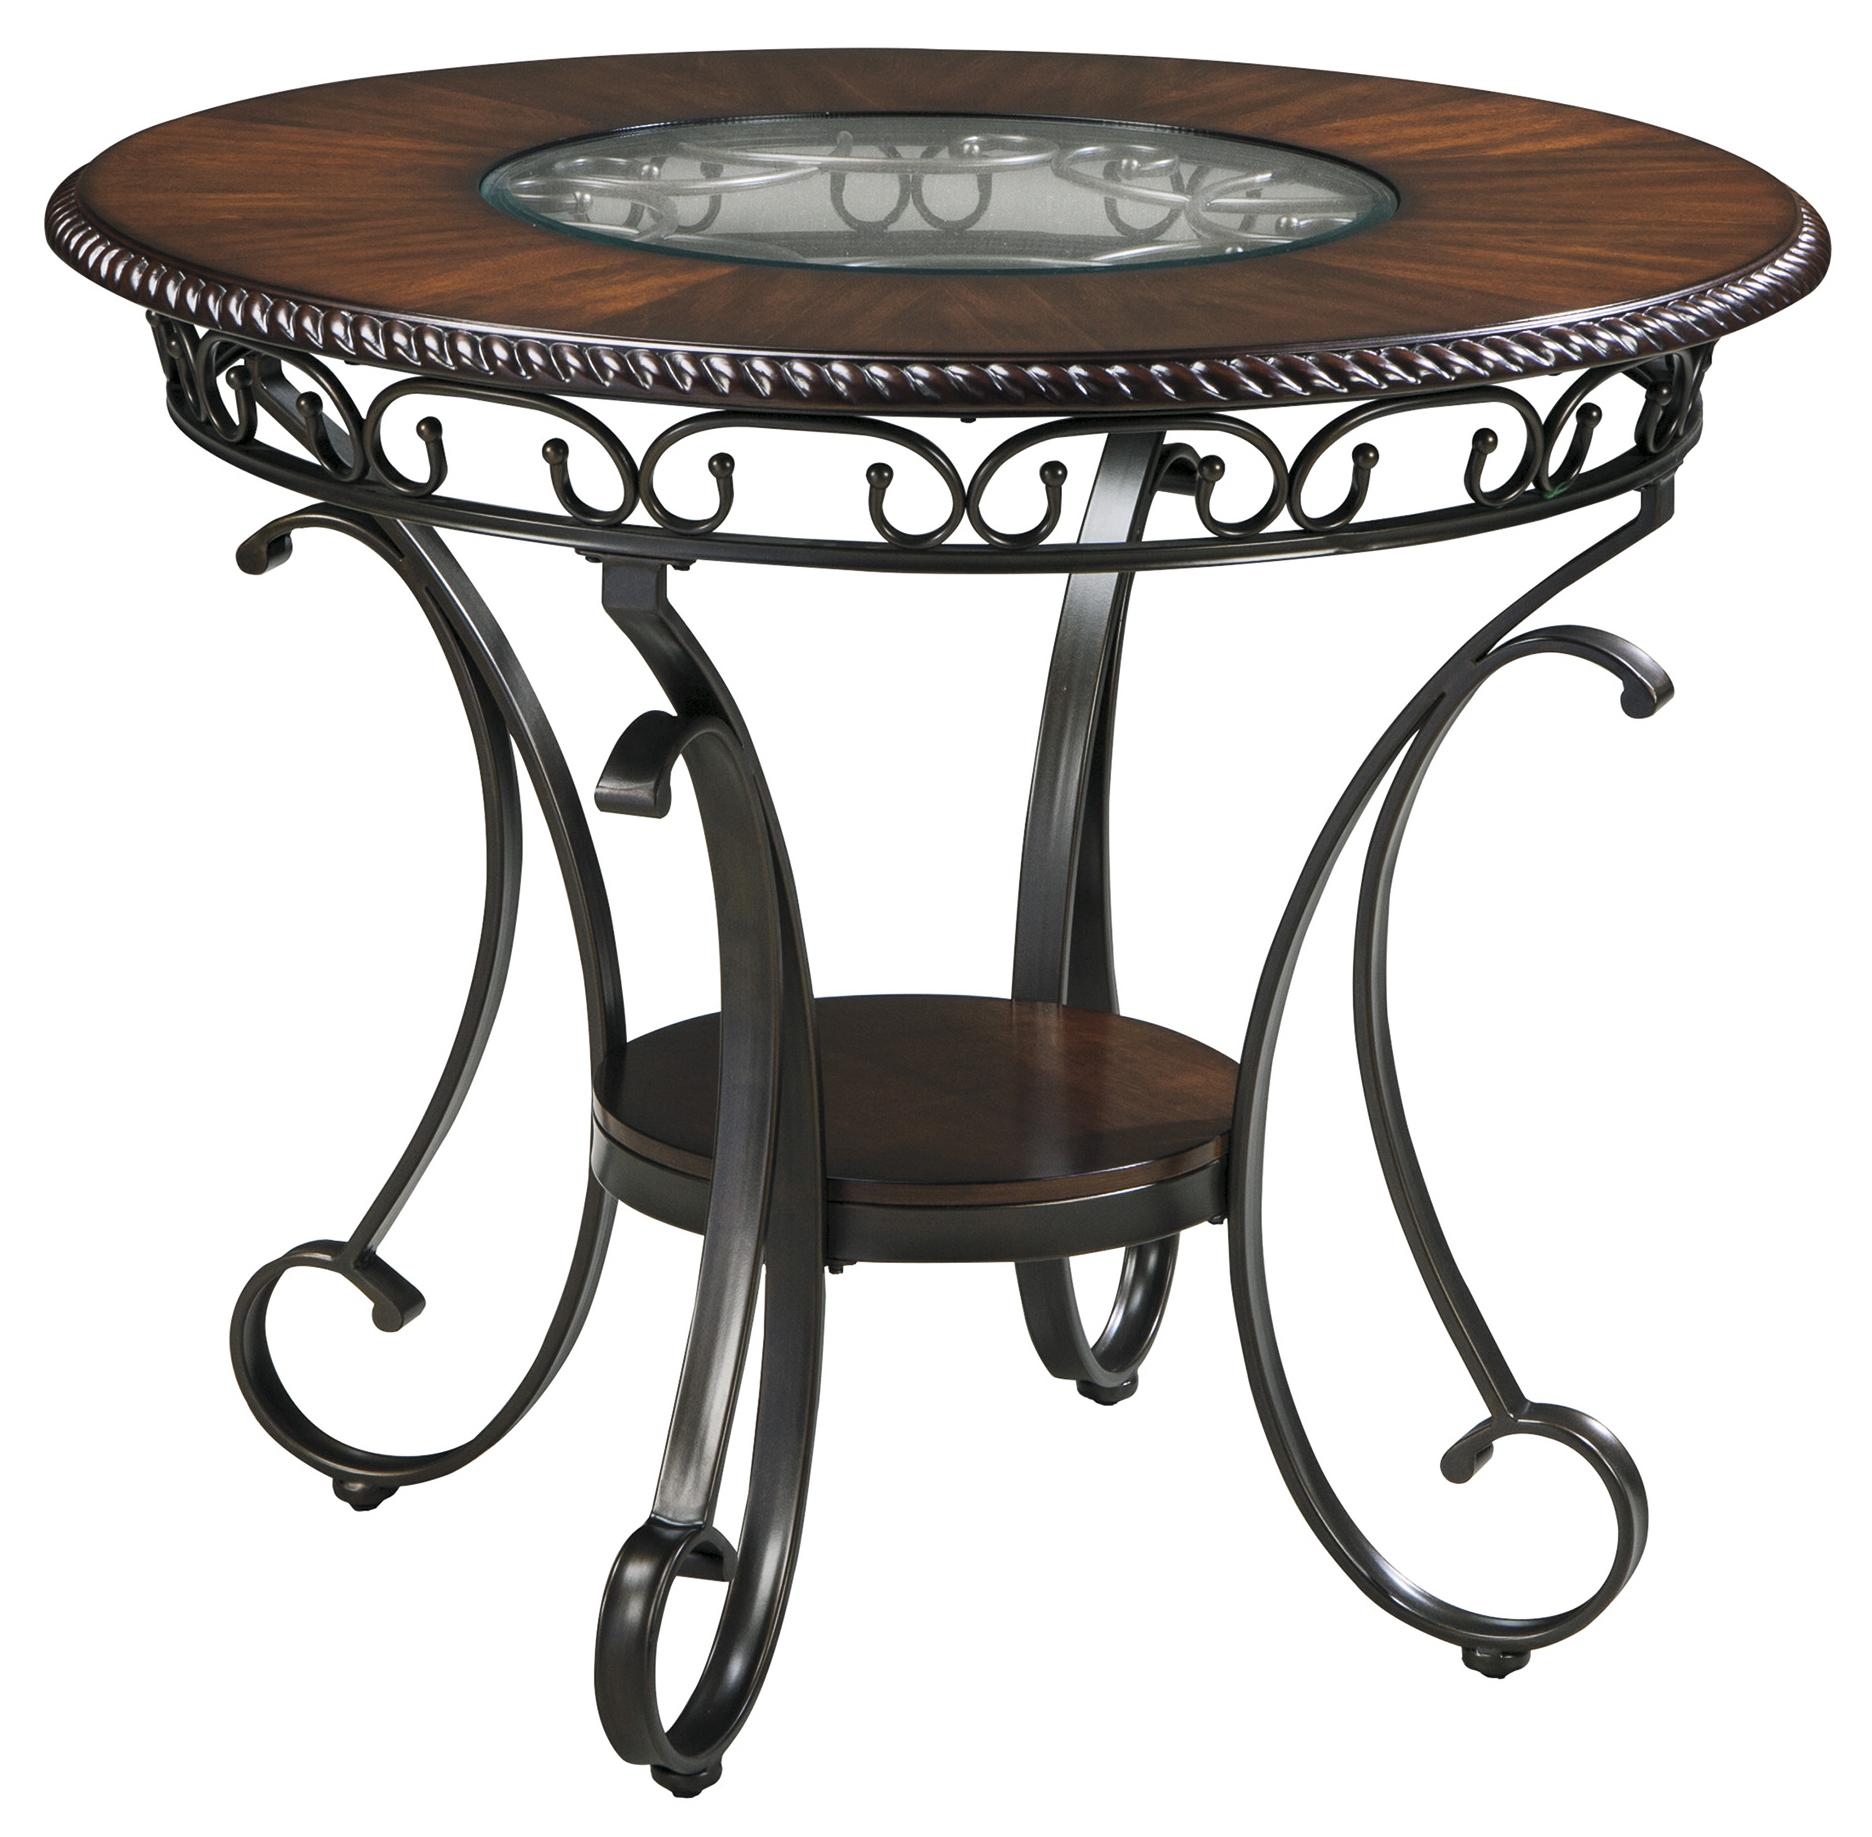 ashley signature design glambrey d329 13 round dining room counter table with metal accents. Black Bedroom Furniture Sets. Home Design Ideas